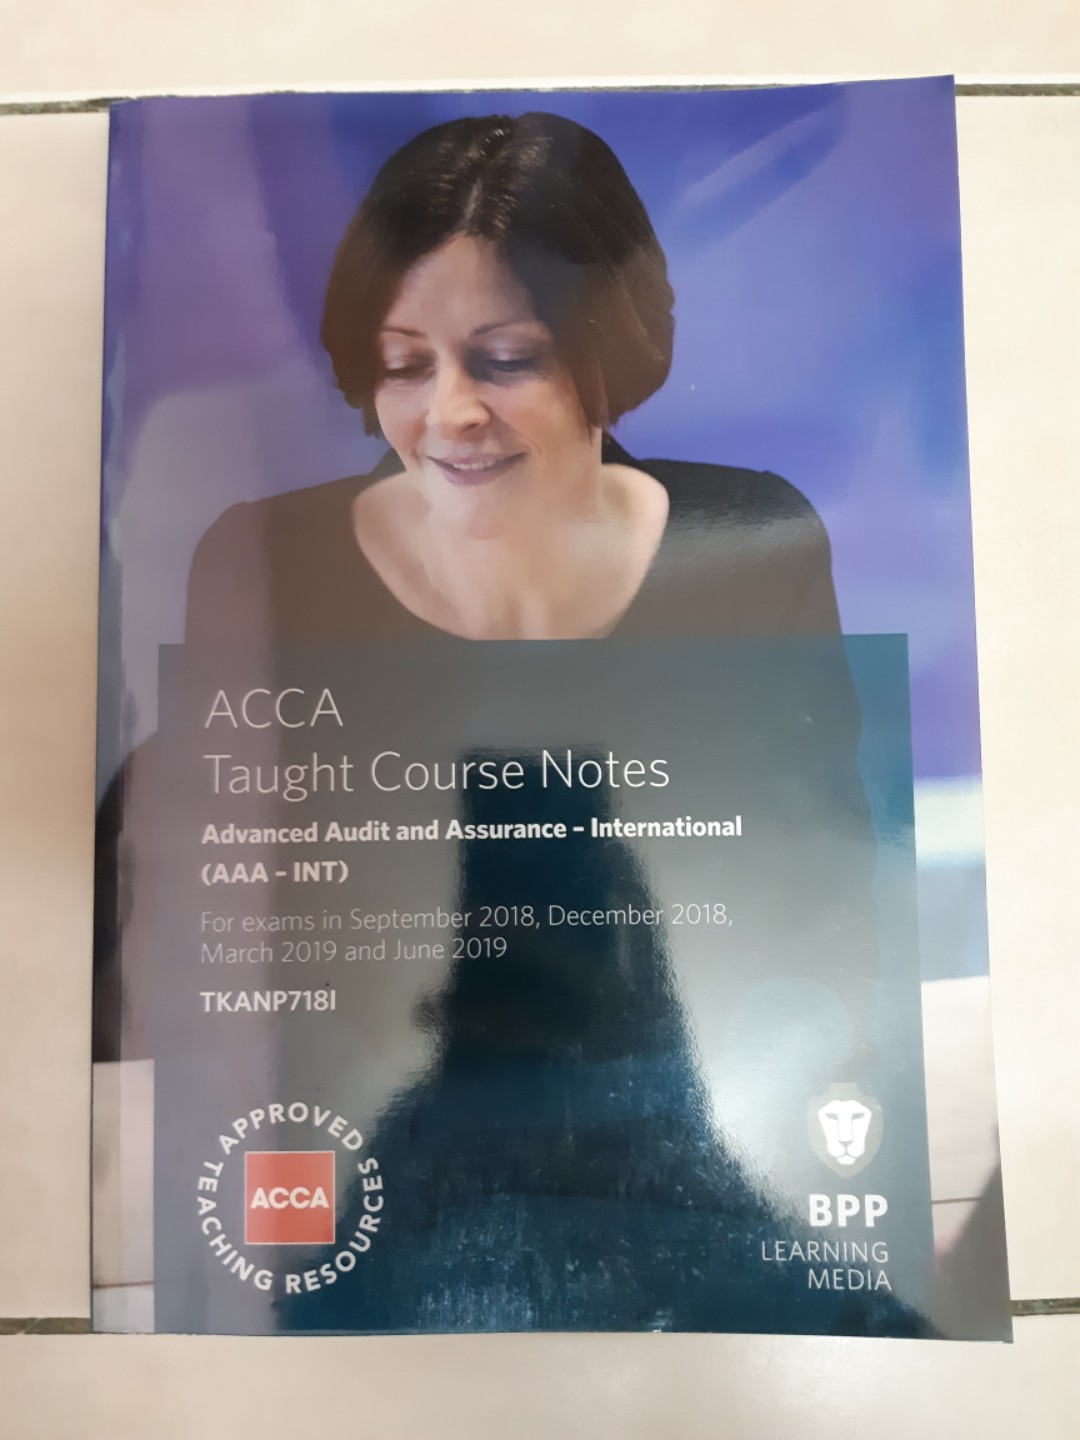 ACCA AAA Advanced Audit and Assurance - International (Taught Course Notes)  Up to June 2019